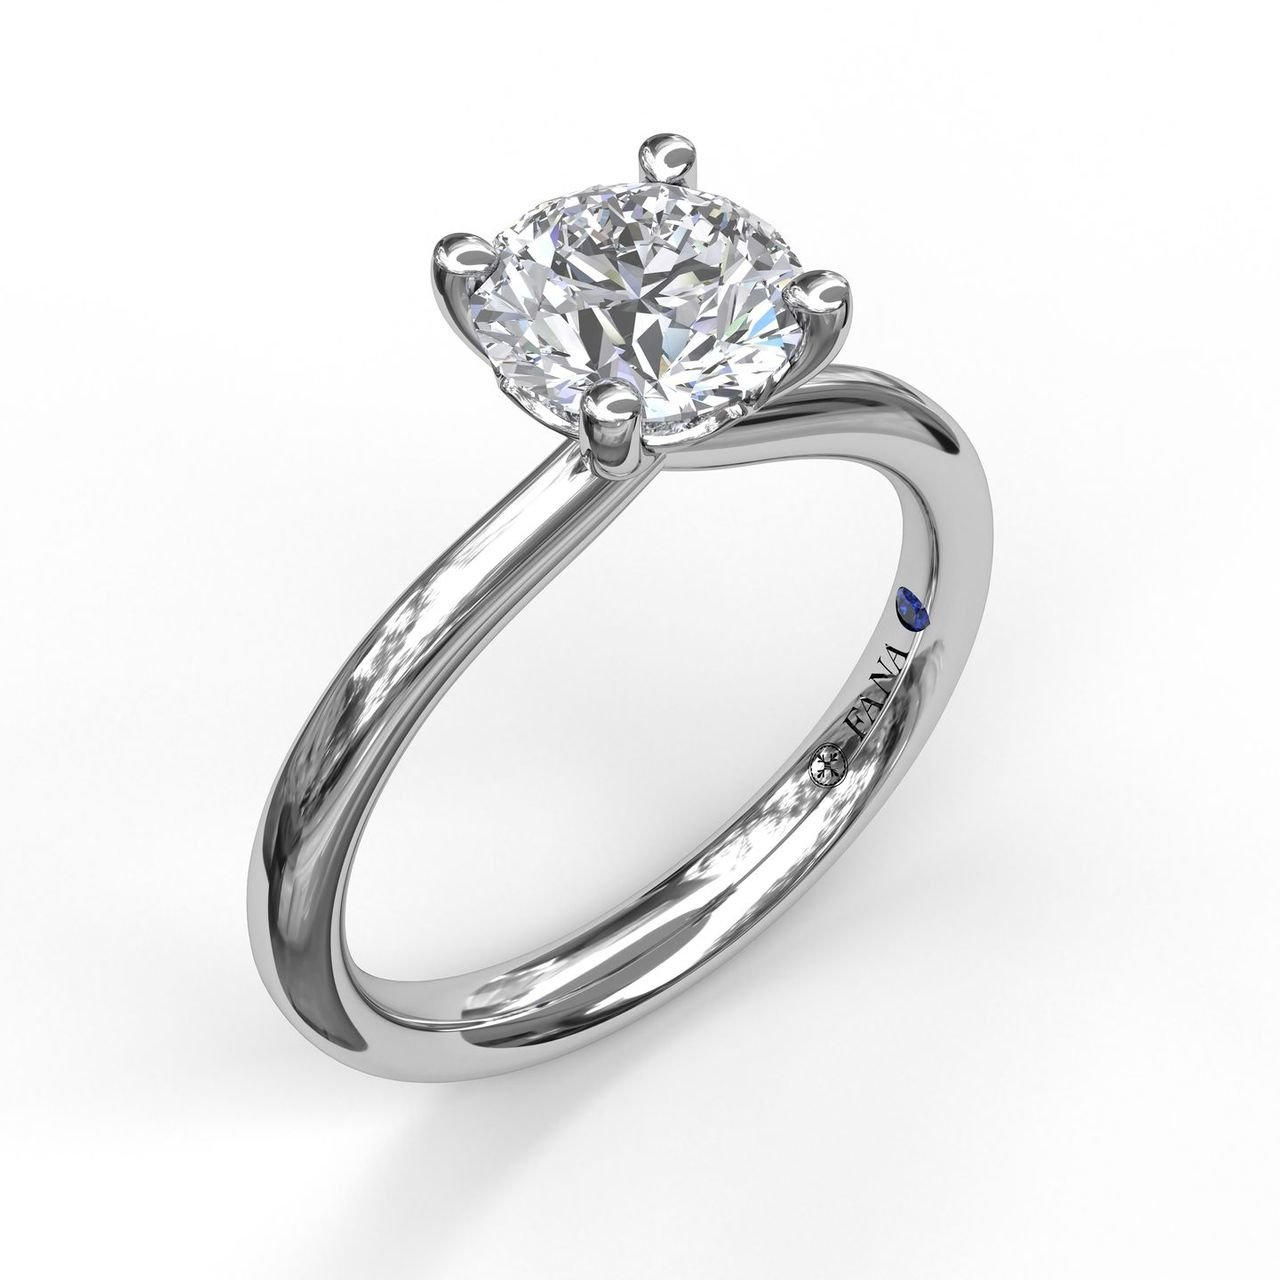 Fana Solitaire White Gold Diamond Engagement Ring Designer Engagement Rings Fine Jewelry Arthur S Jewelers